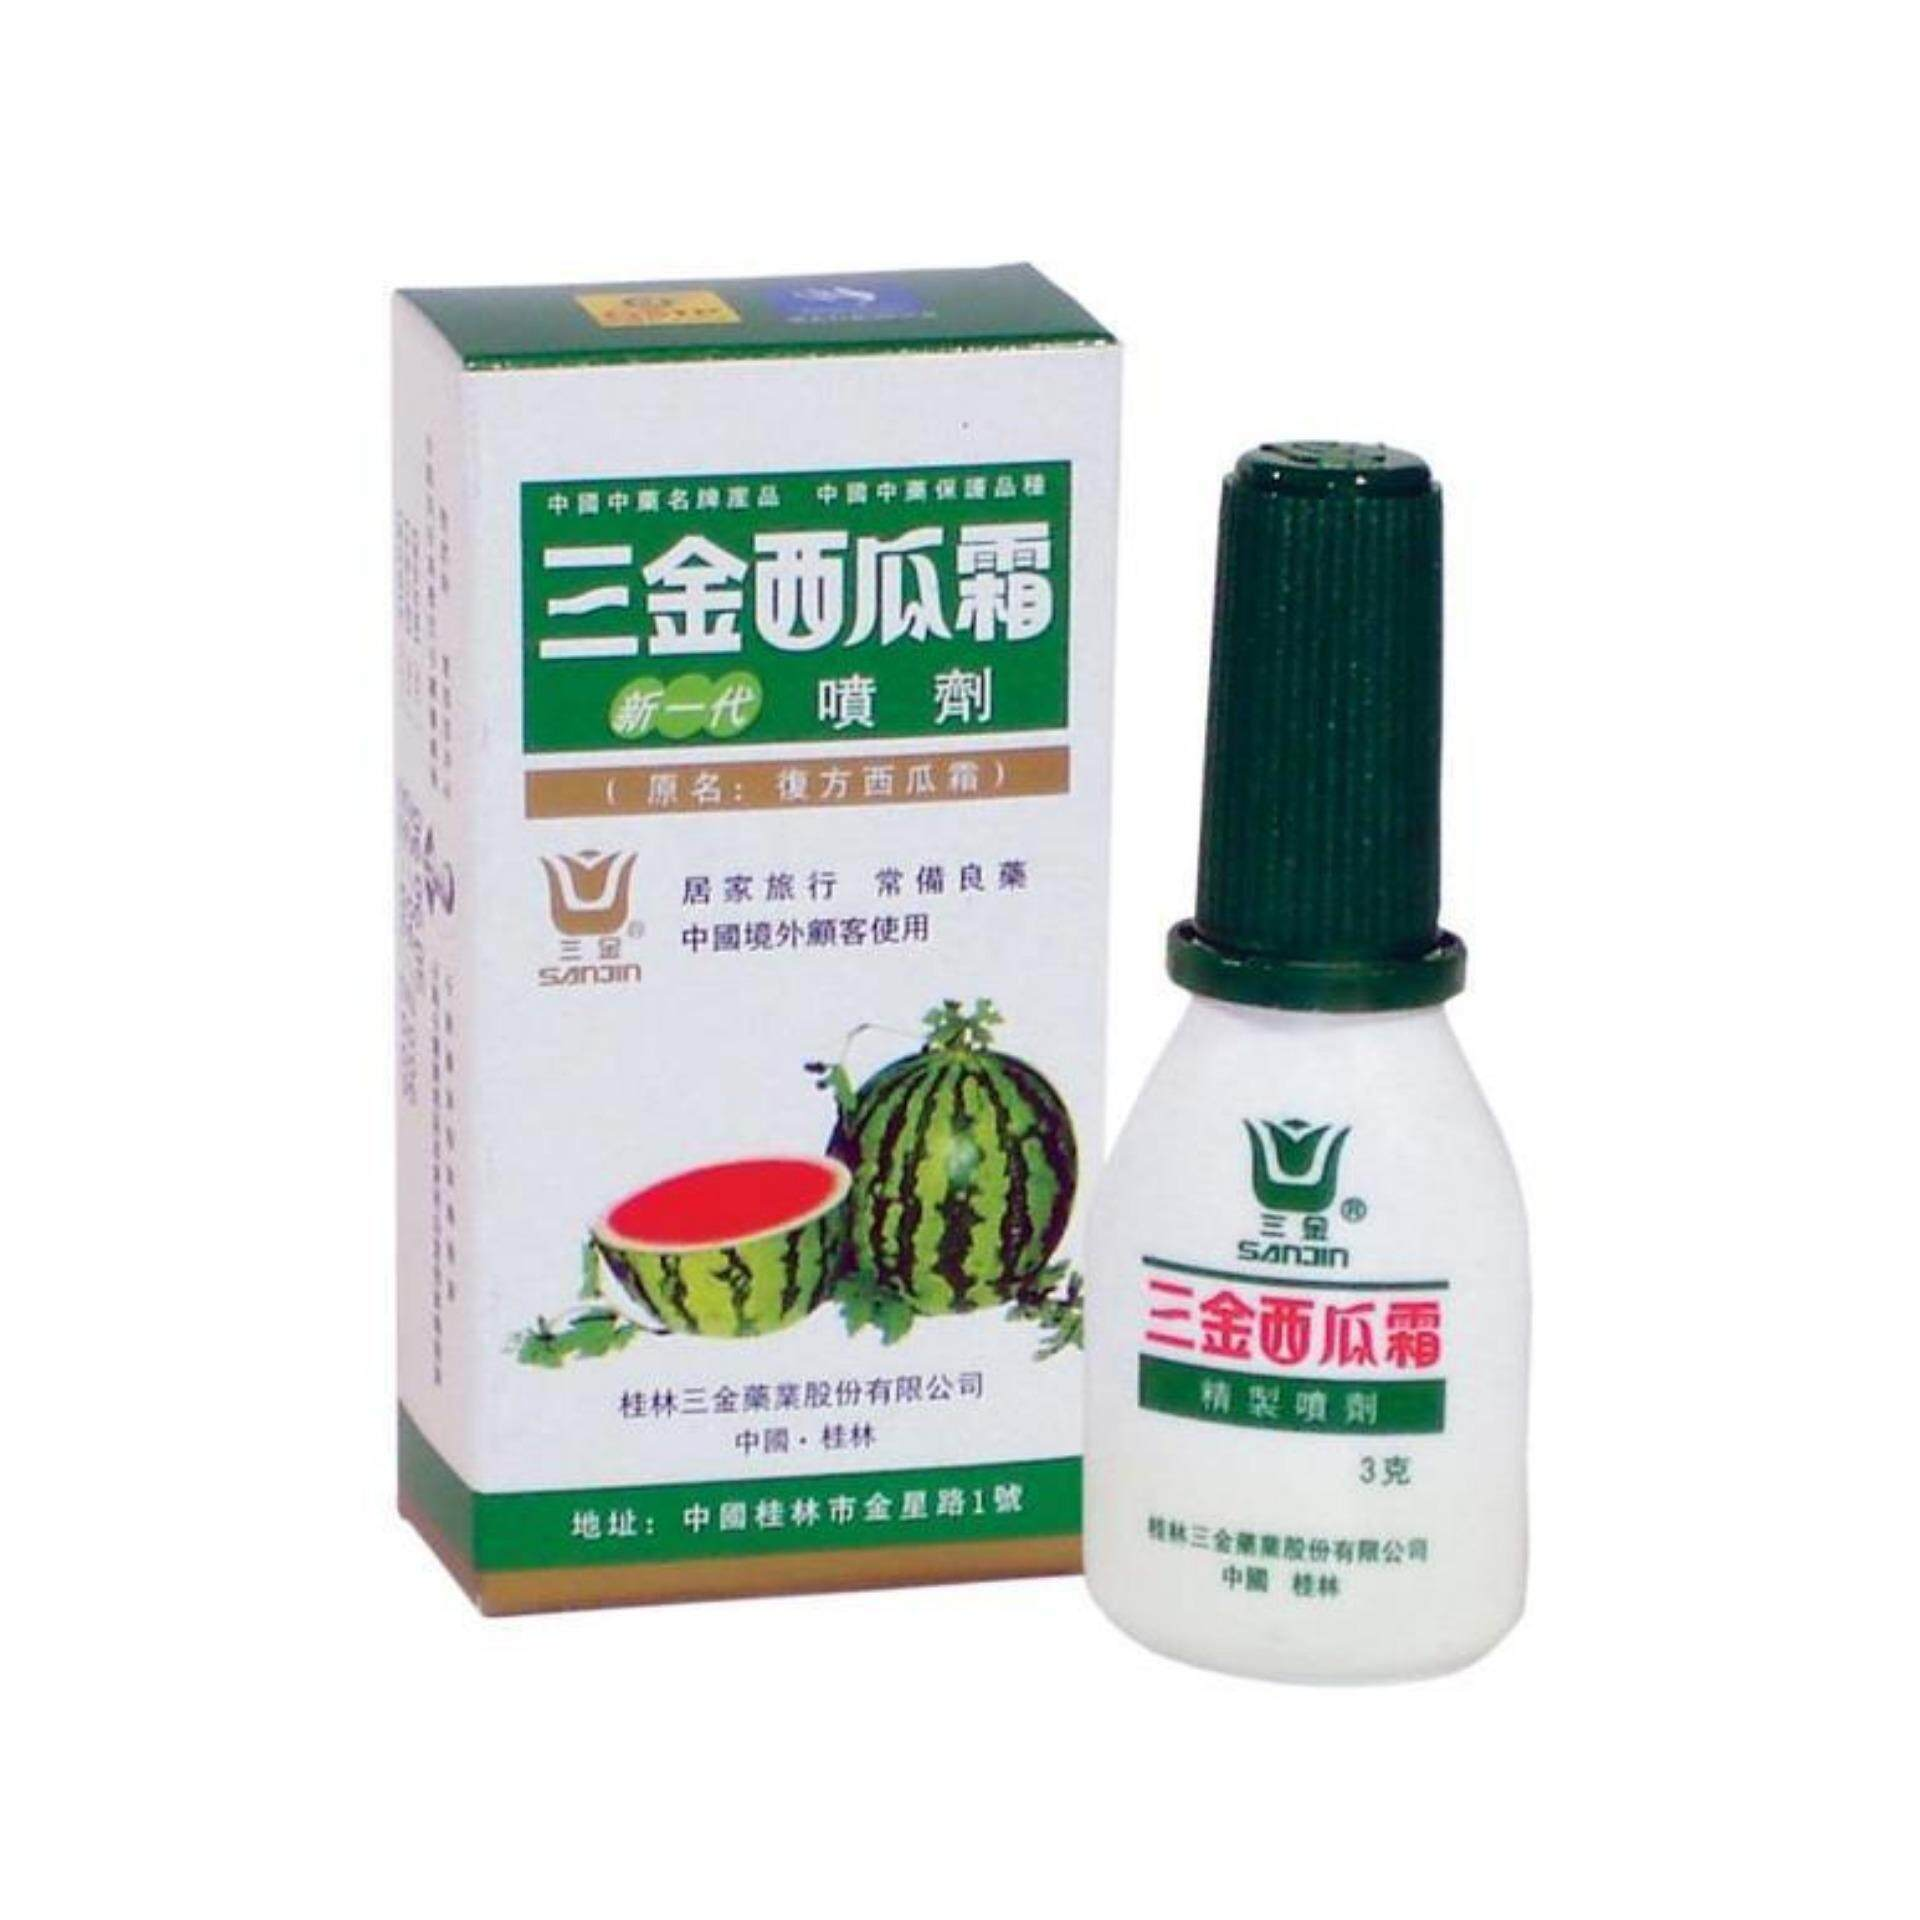 Watermelon Frost Spray 3g (Powder for Ulcers /Sore Throat)